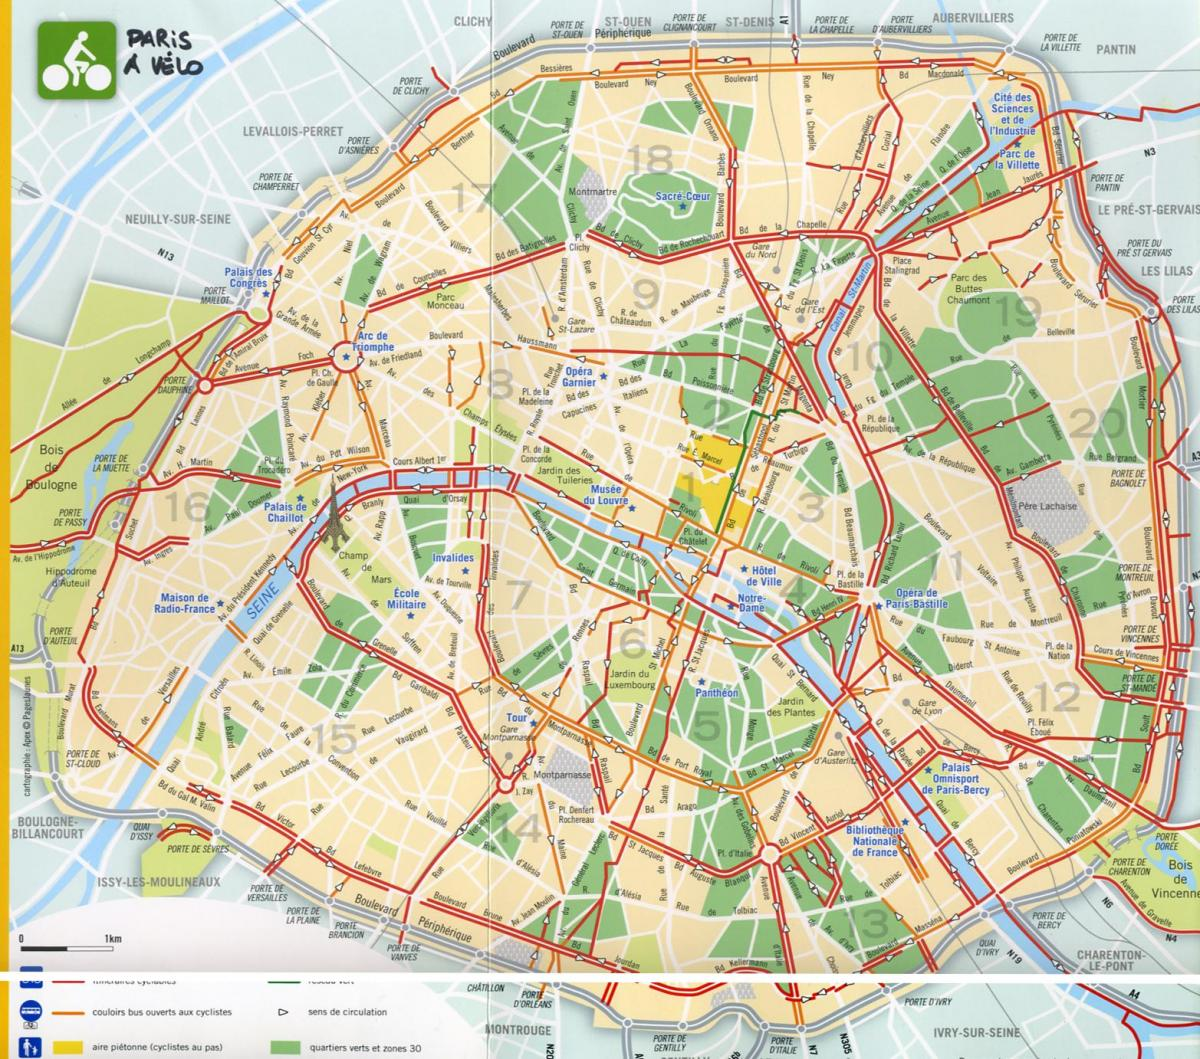 La carte de Paris